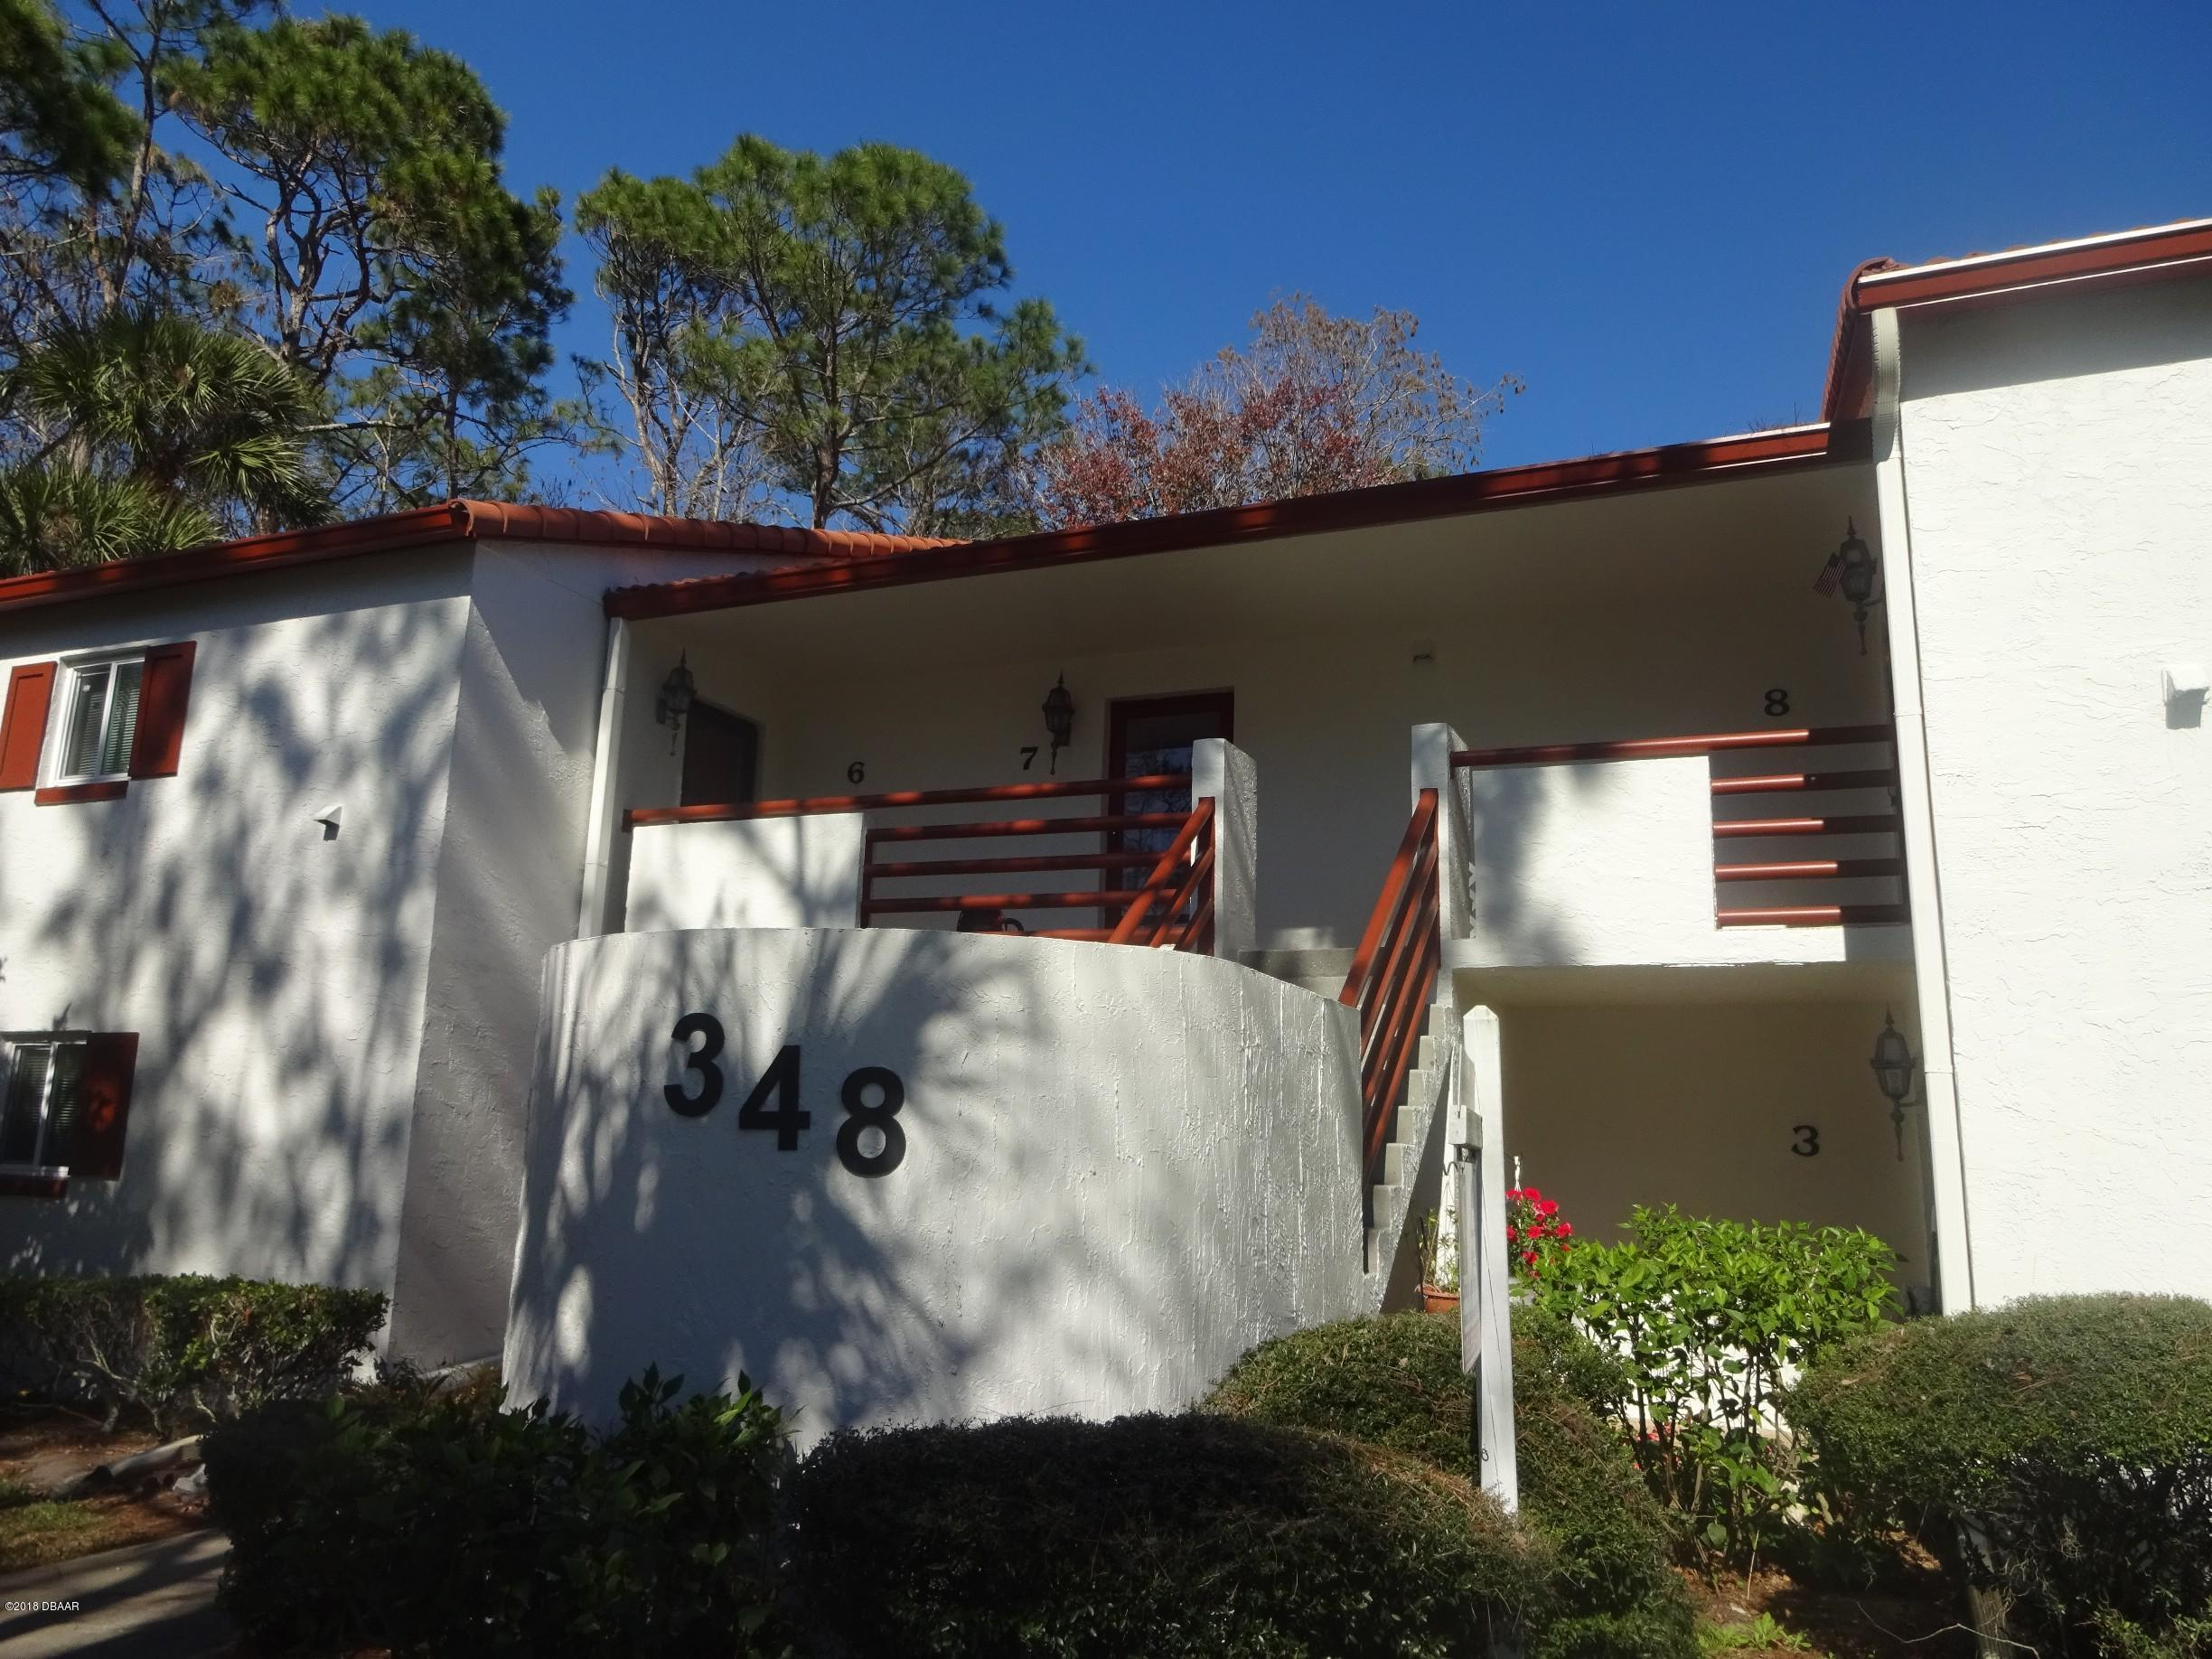 348 Bob White Daytona Beach - 1